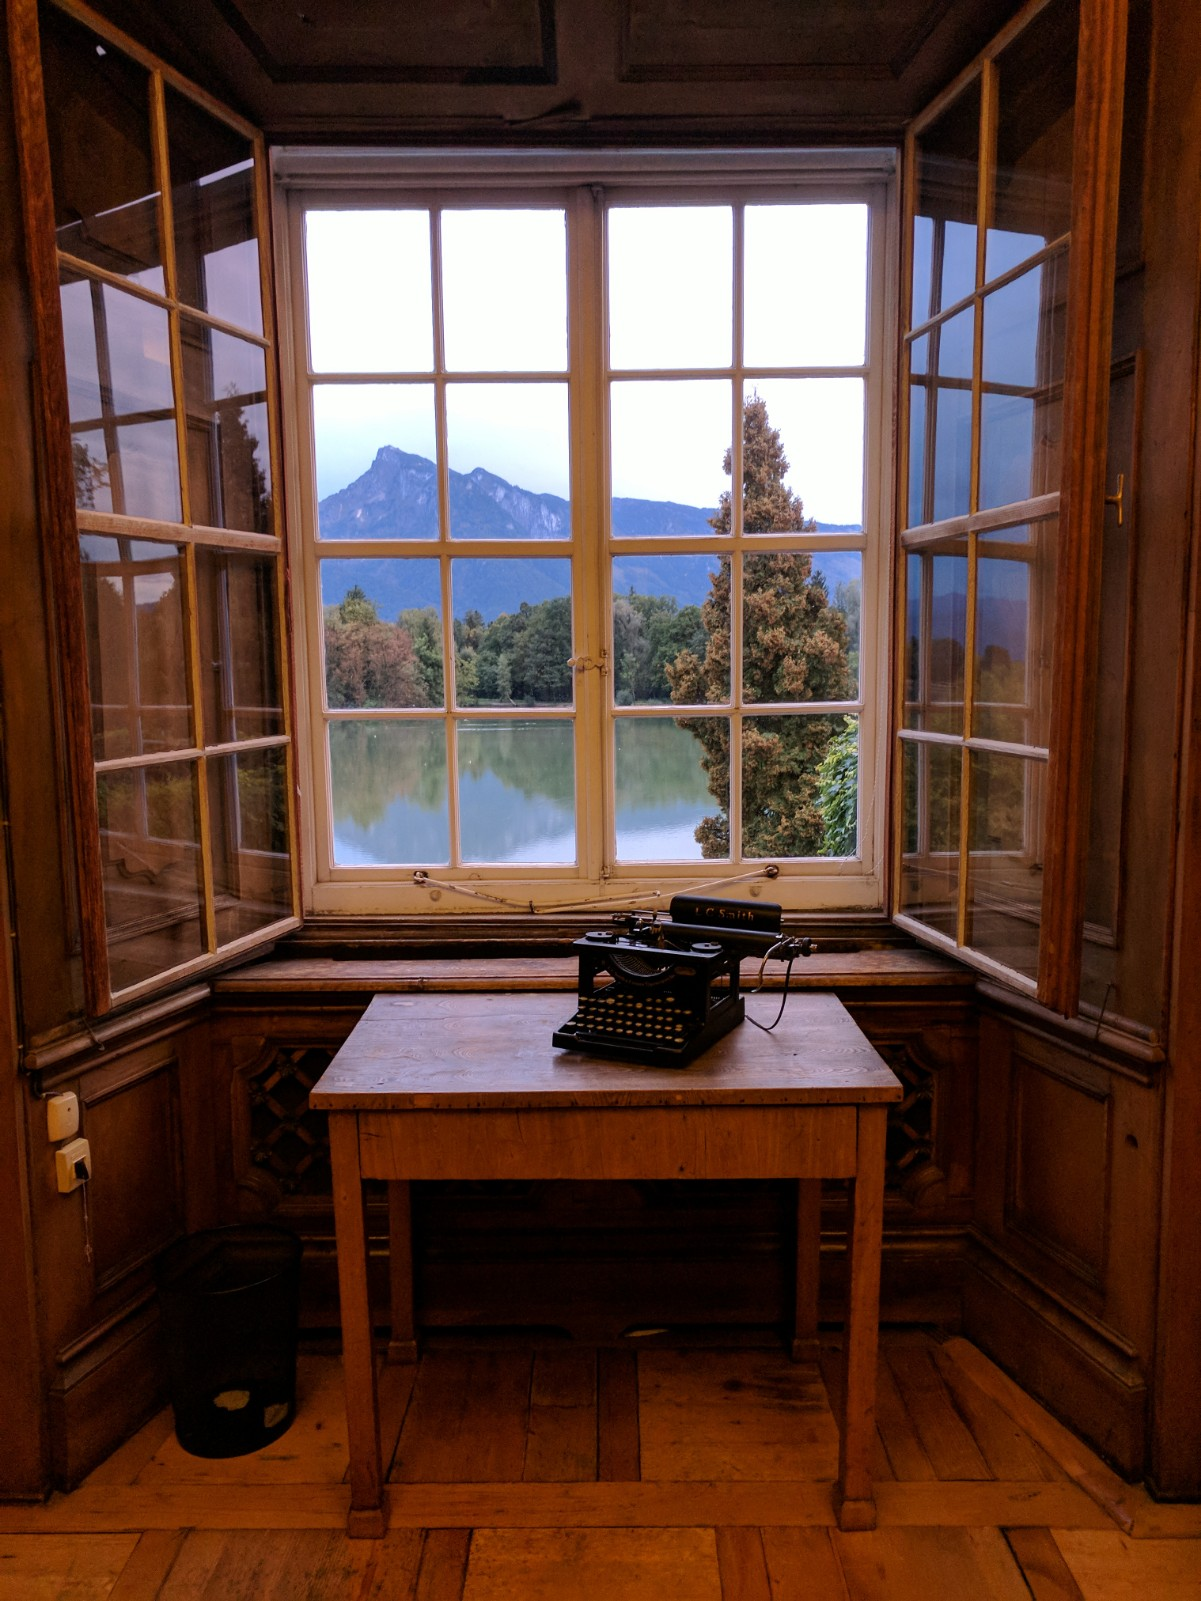 A view of the lake from the writing room of Max Reinhardt, Europe's most famous theater director and co-founder of the Salzburg Festival, who renovated the Schlosse from 1918-1938, before the Nazis confiscated the property.